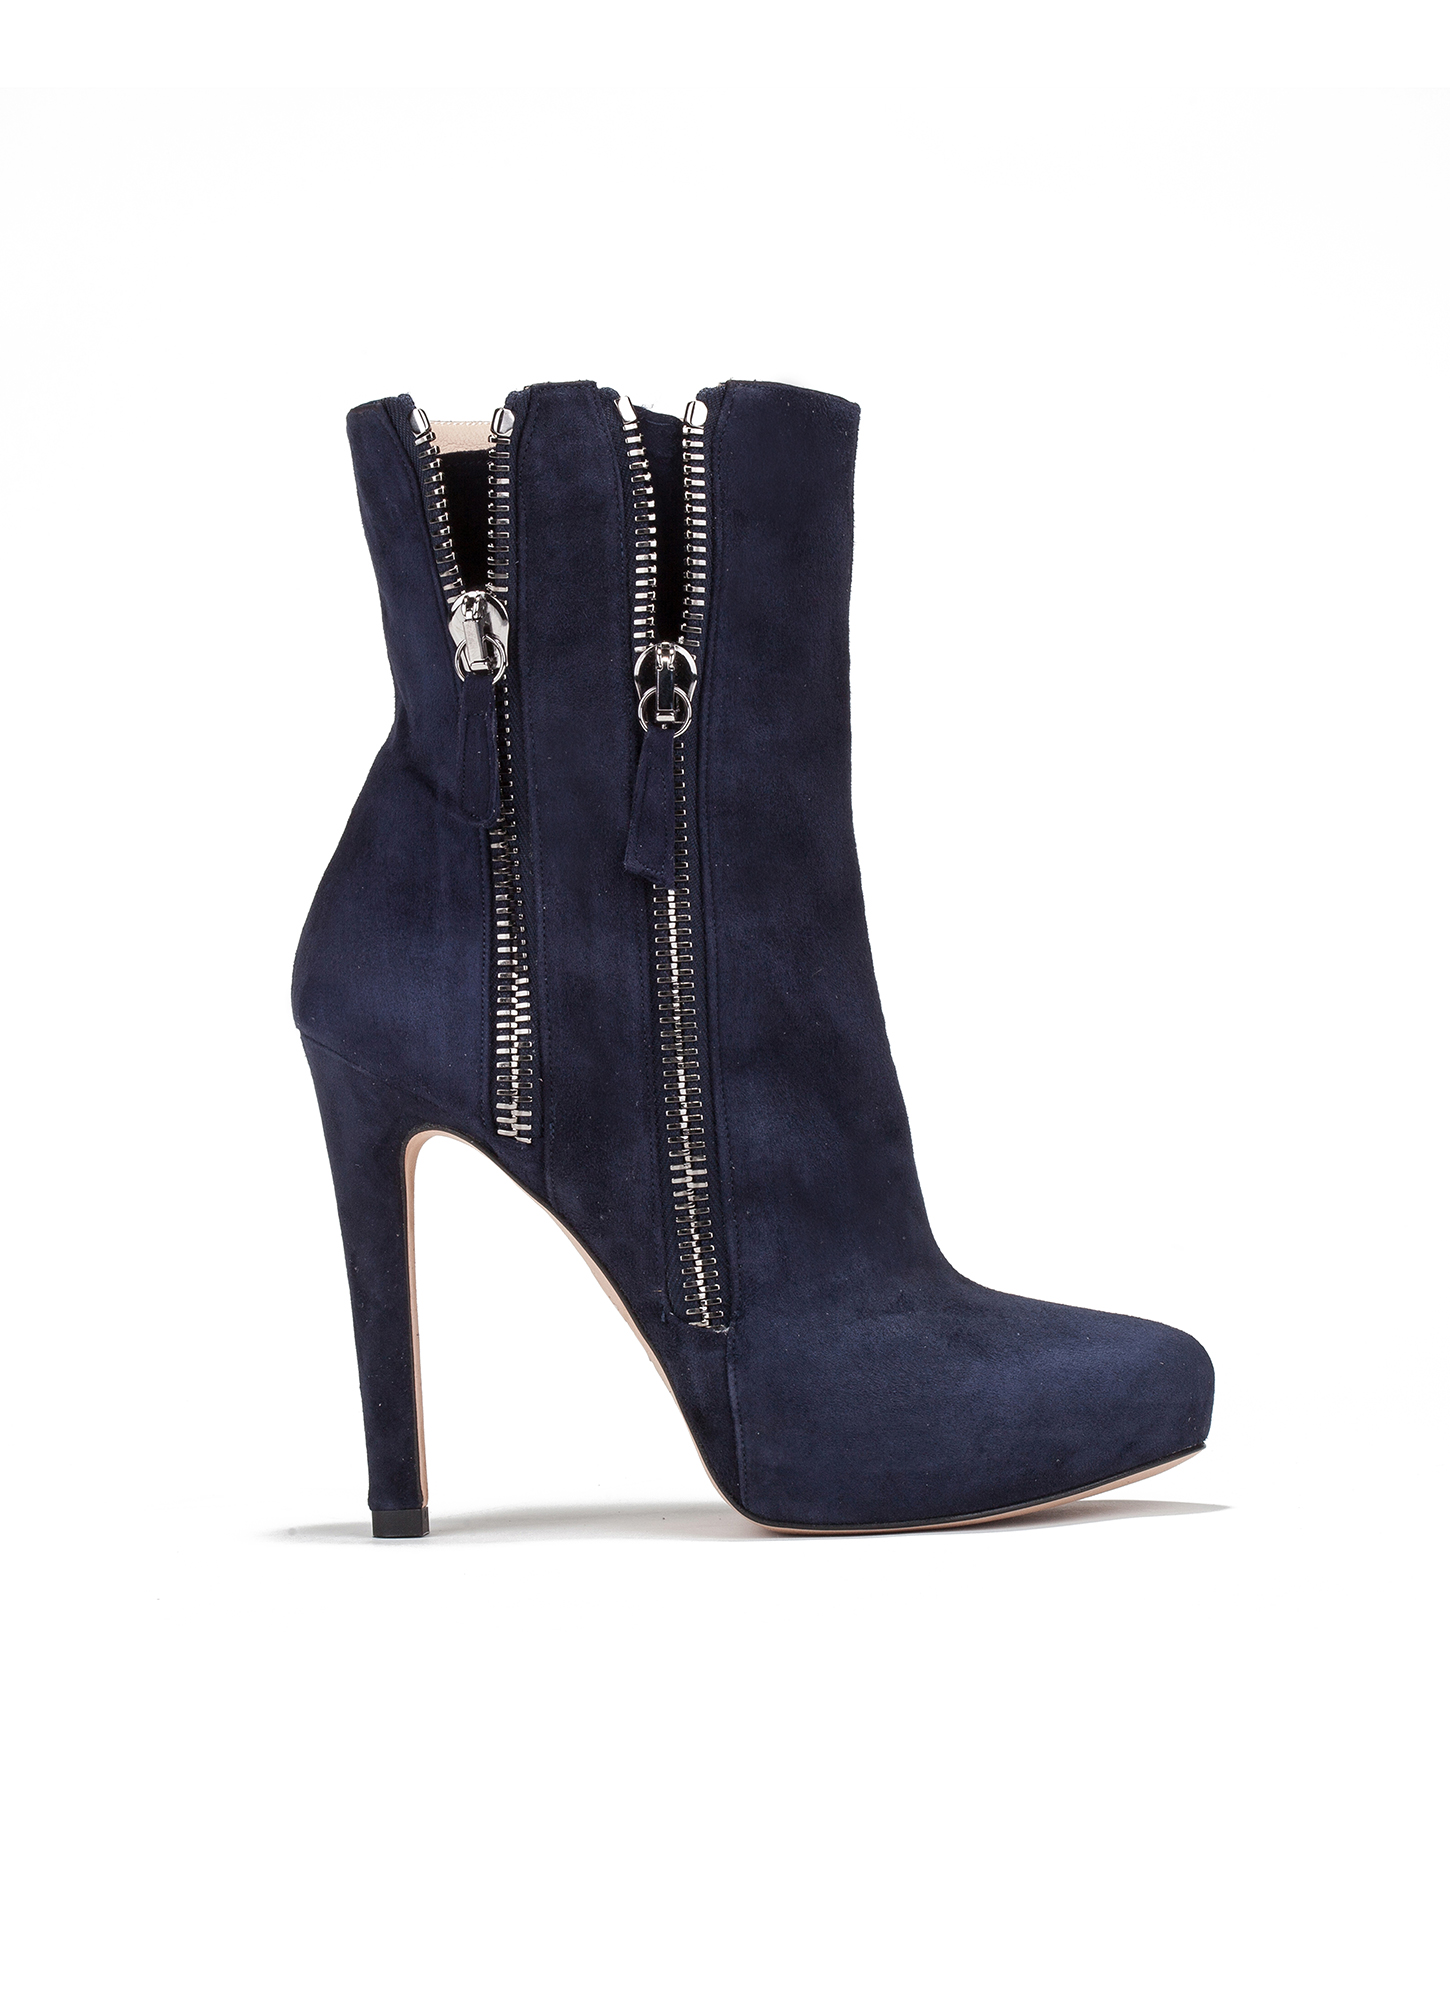 Pura Lopez High heels - navy